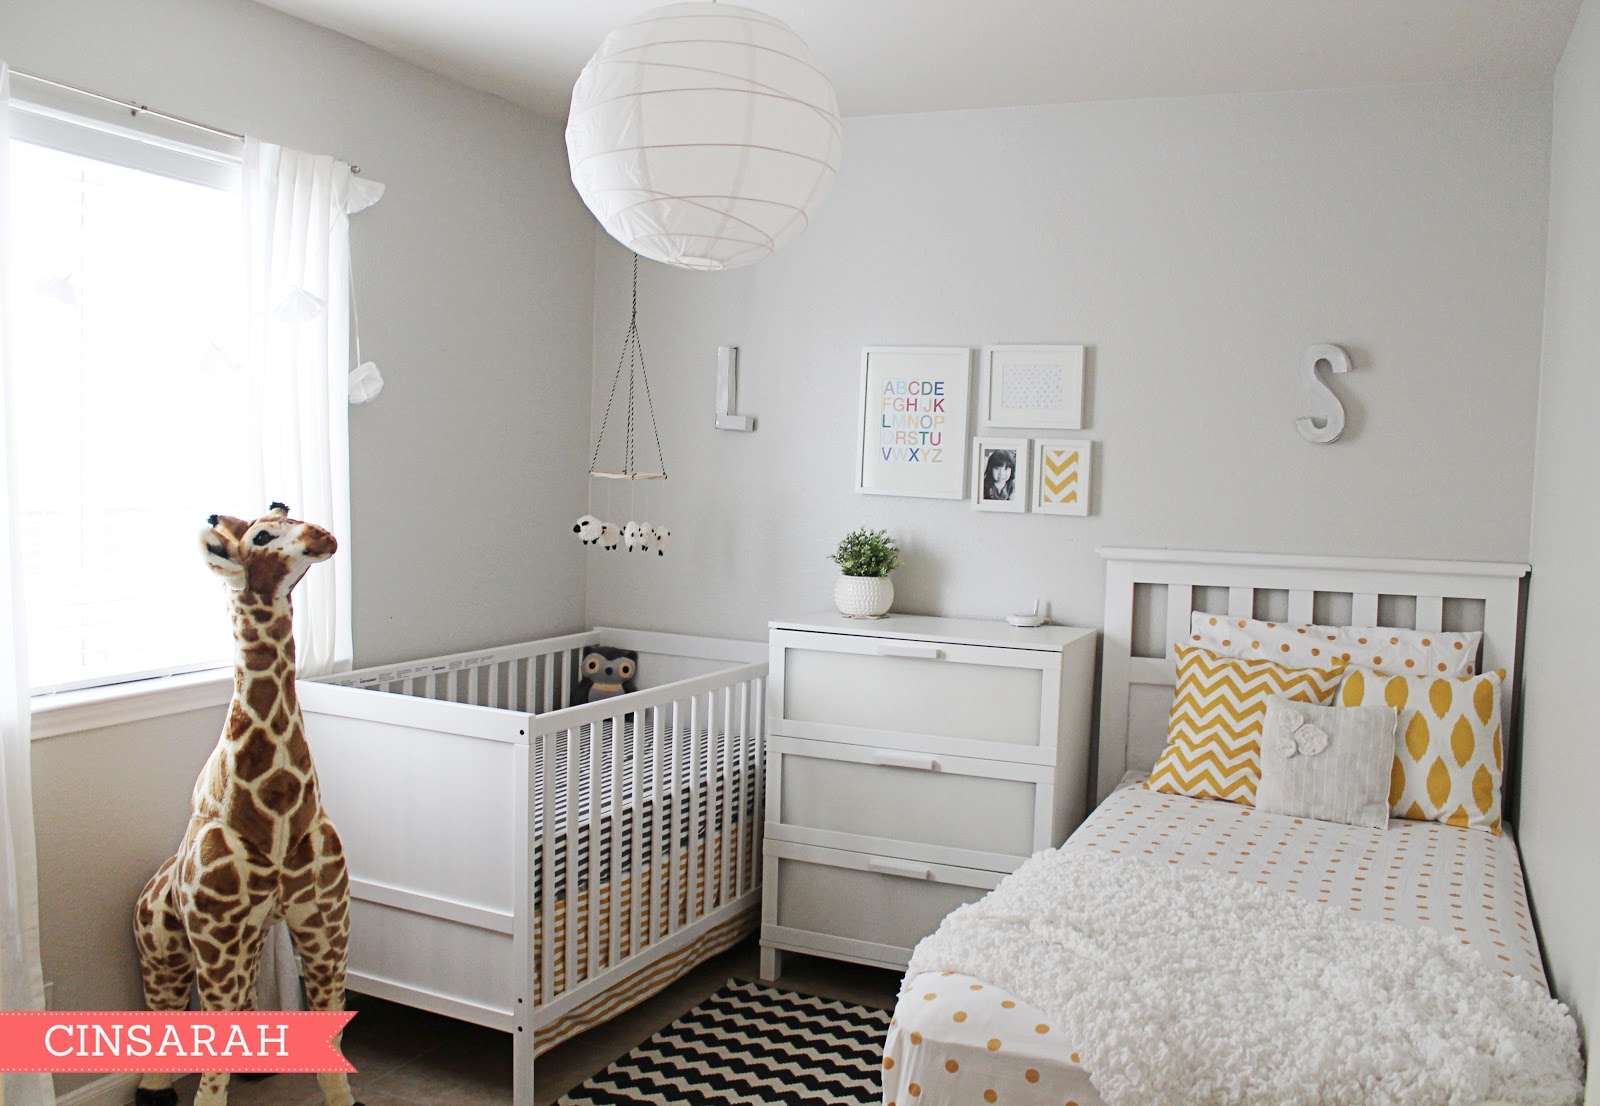 Cinsarah Levi 39 S Shared Nursery Reveal